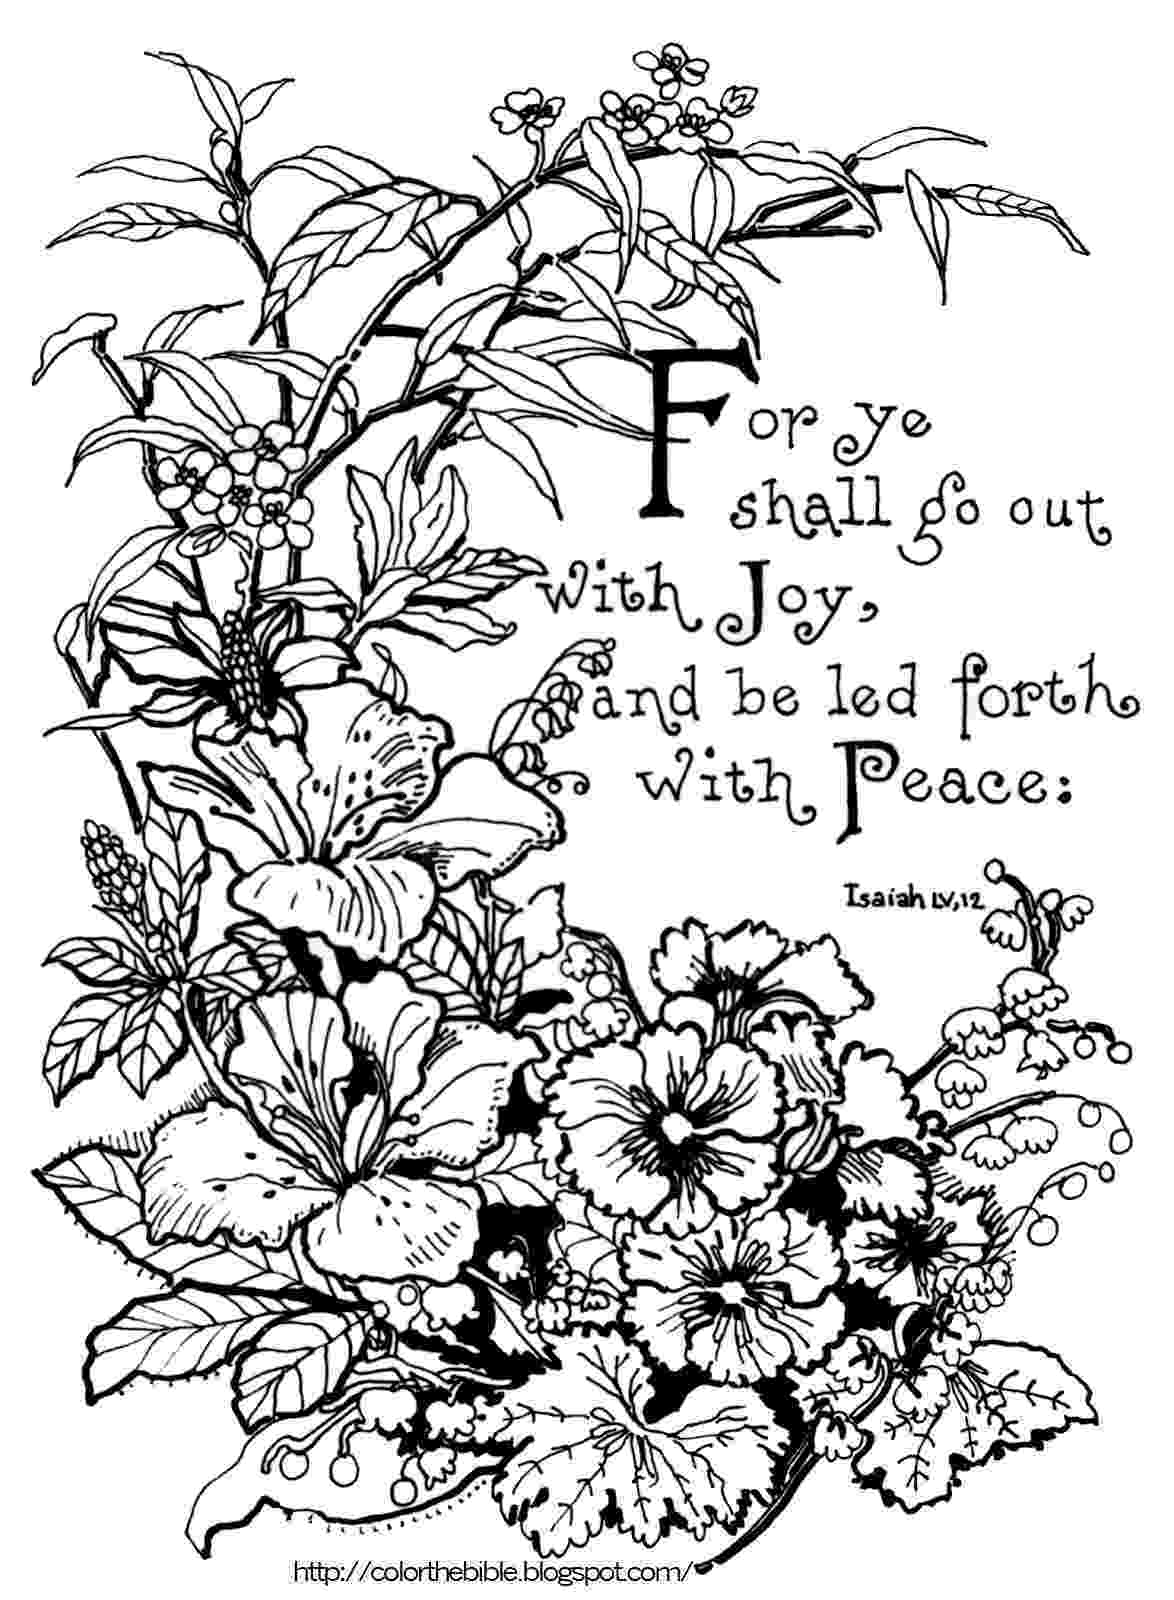 pansy coloring page pansy flowers coloring page download free pansy flowers coloring page pansy